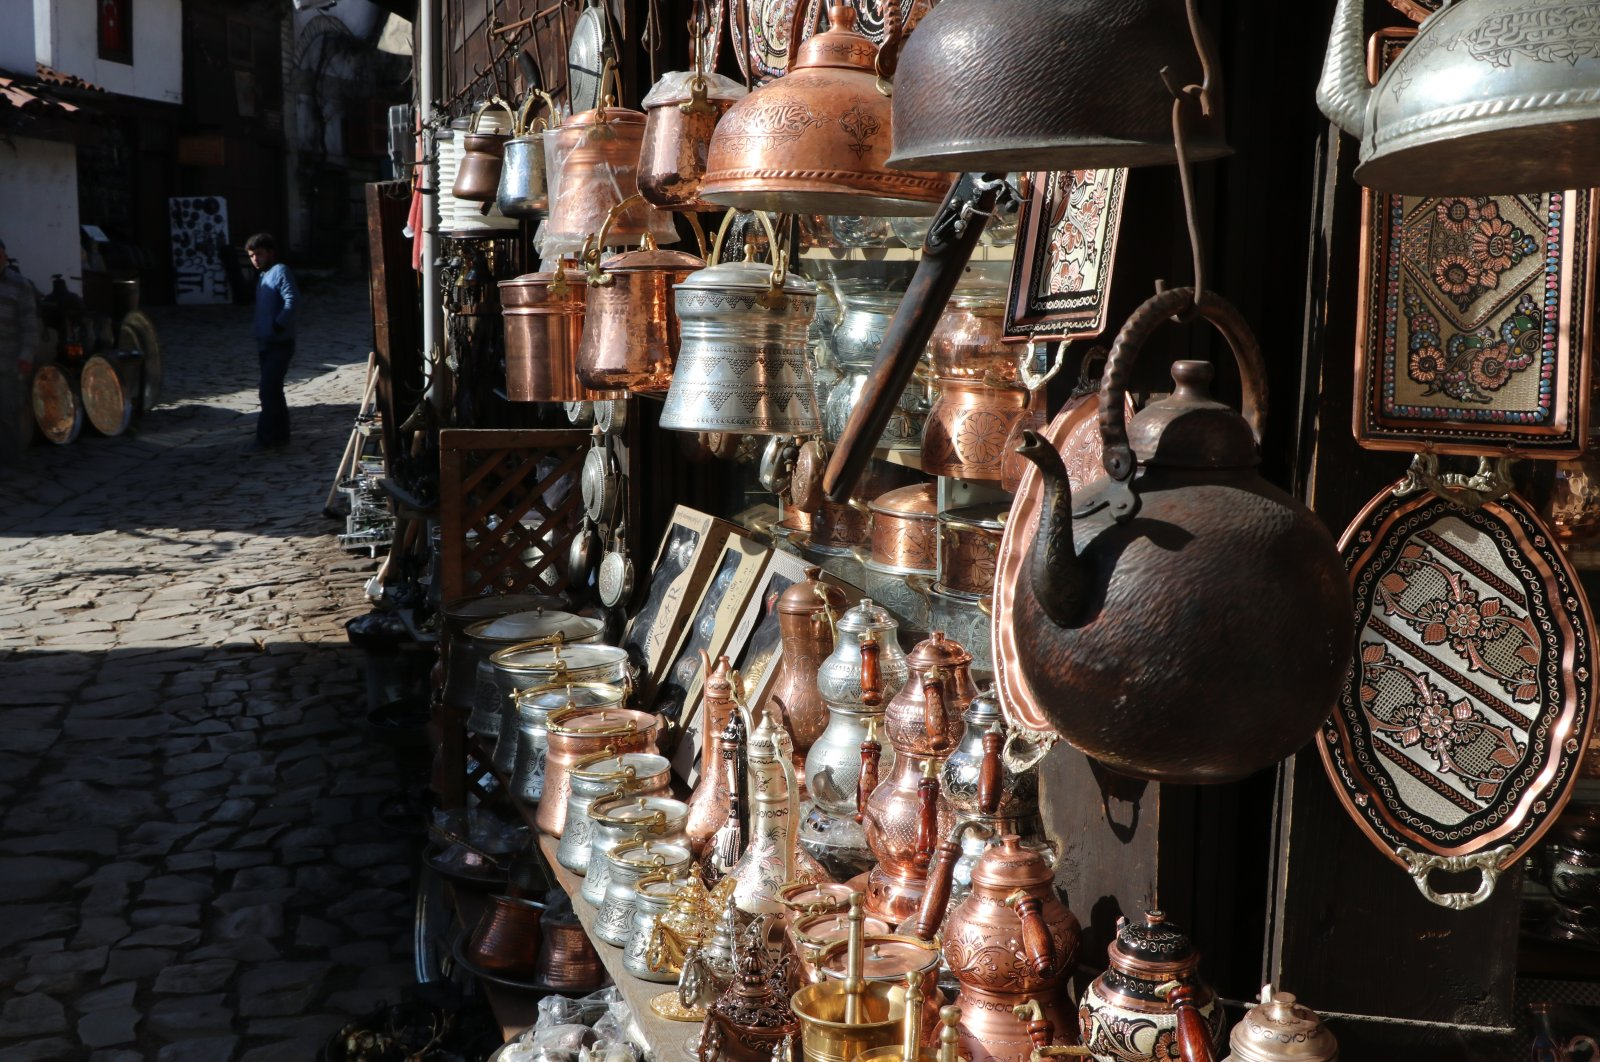 Various metal teapots and pitchers are on display at one of the workshops of the Blacksmiths Market in the Safranbolu district of Karabük, northern Turkey, Feb. 3, 2021. (IHA Photo)